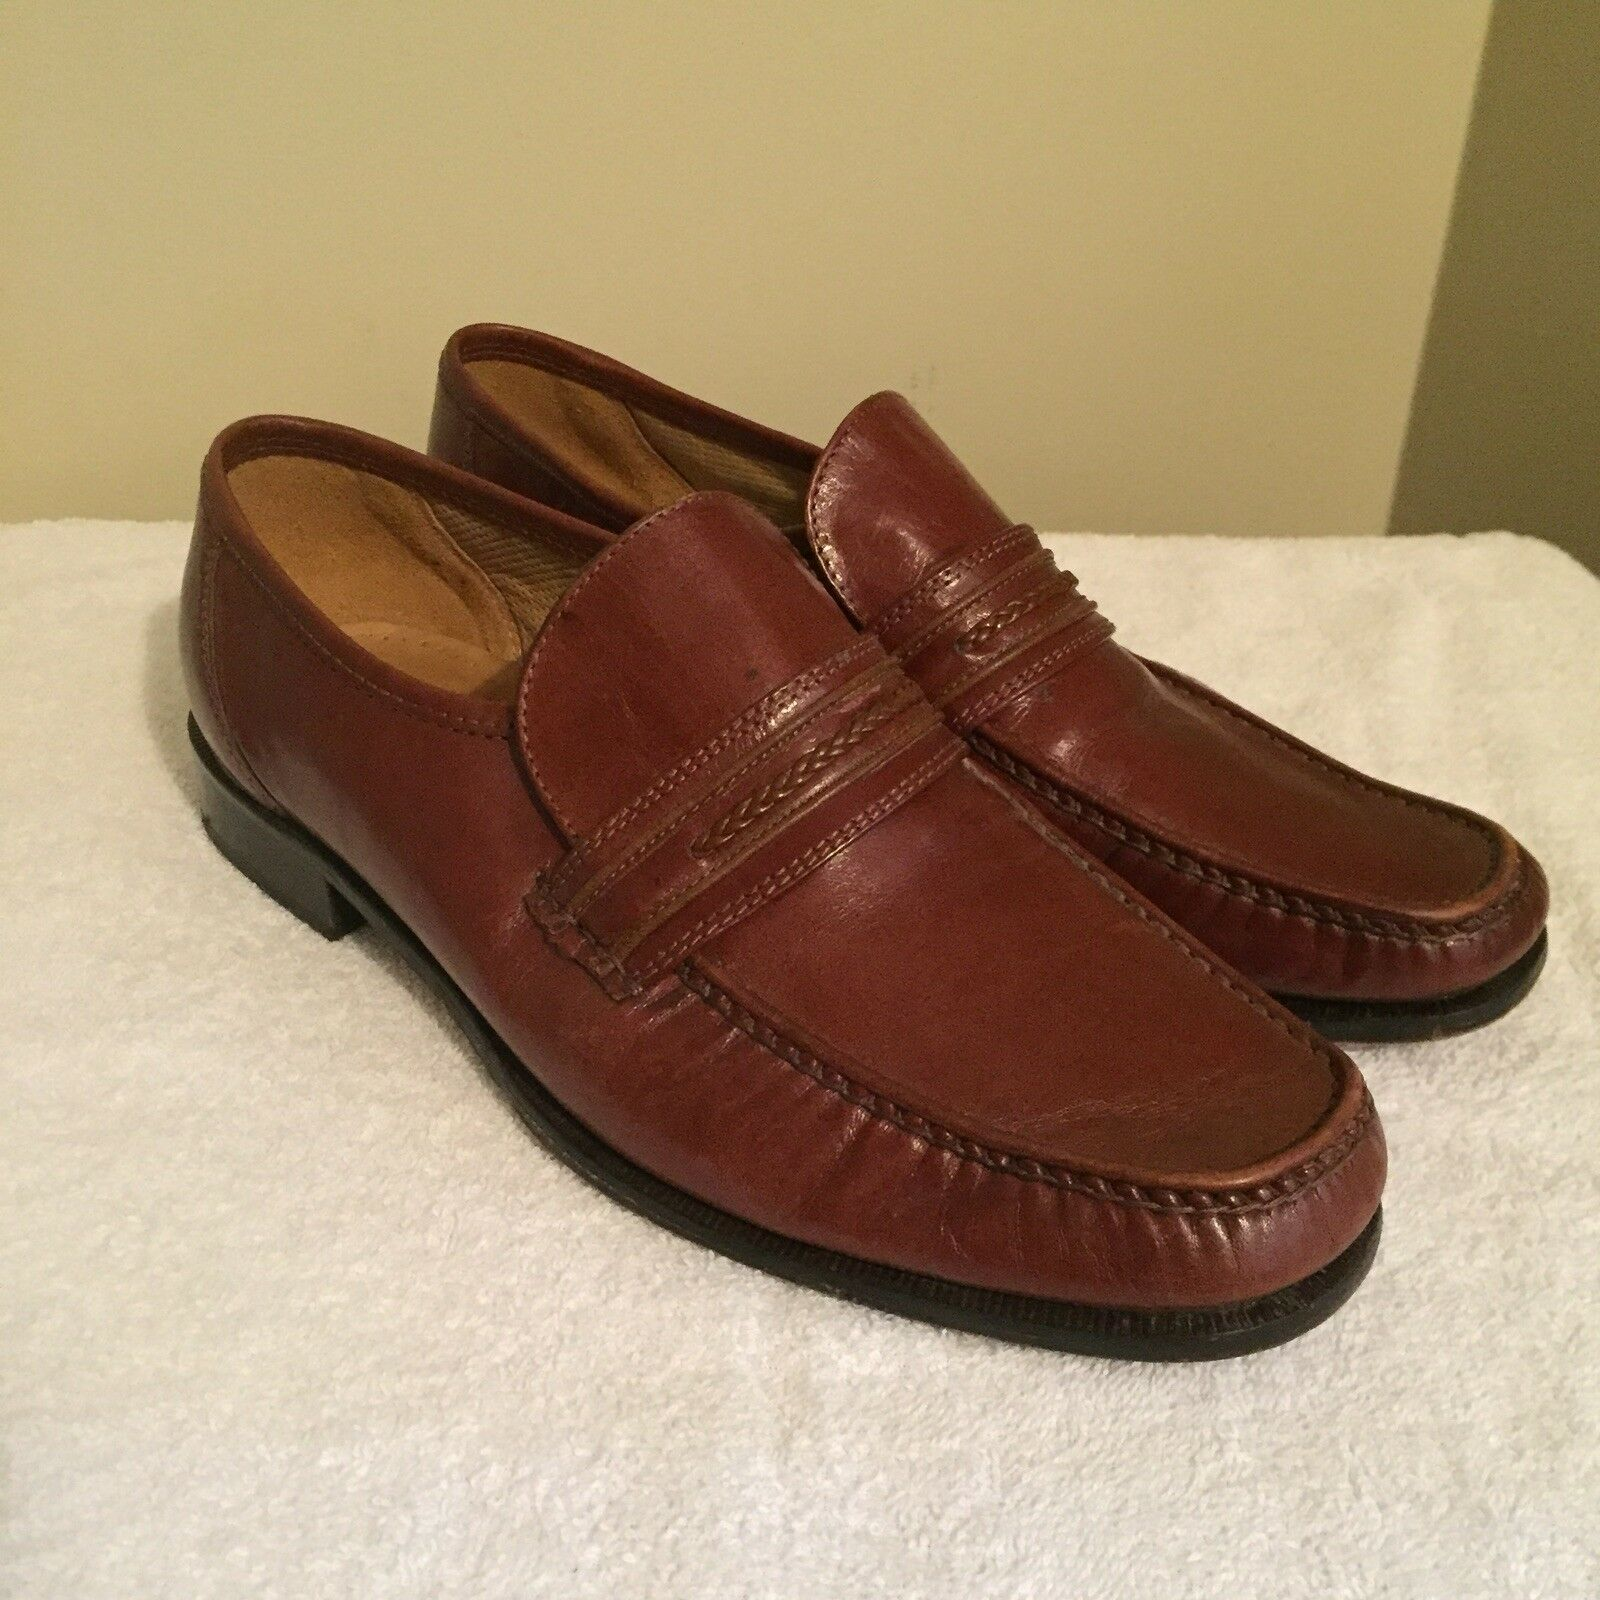 Melluso Calzata Italian Leather Slip On Loafers Brown Mens US 9 EUR 42